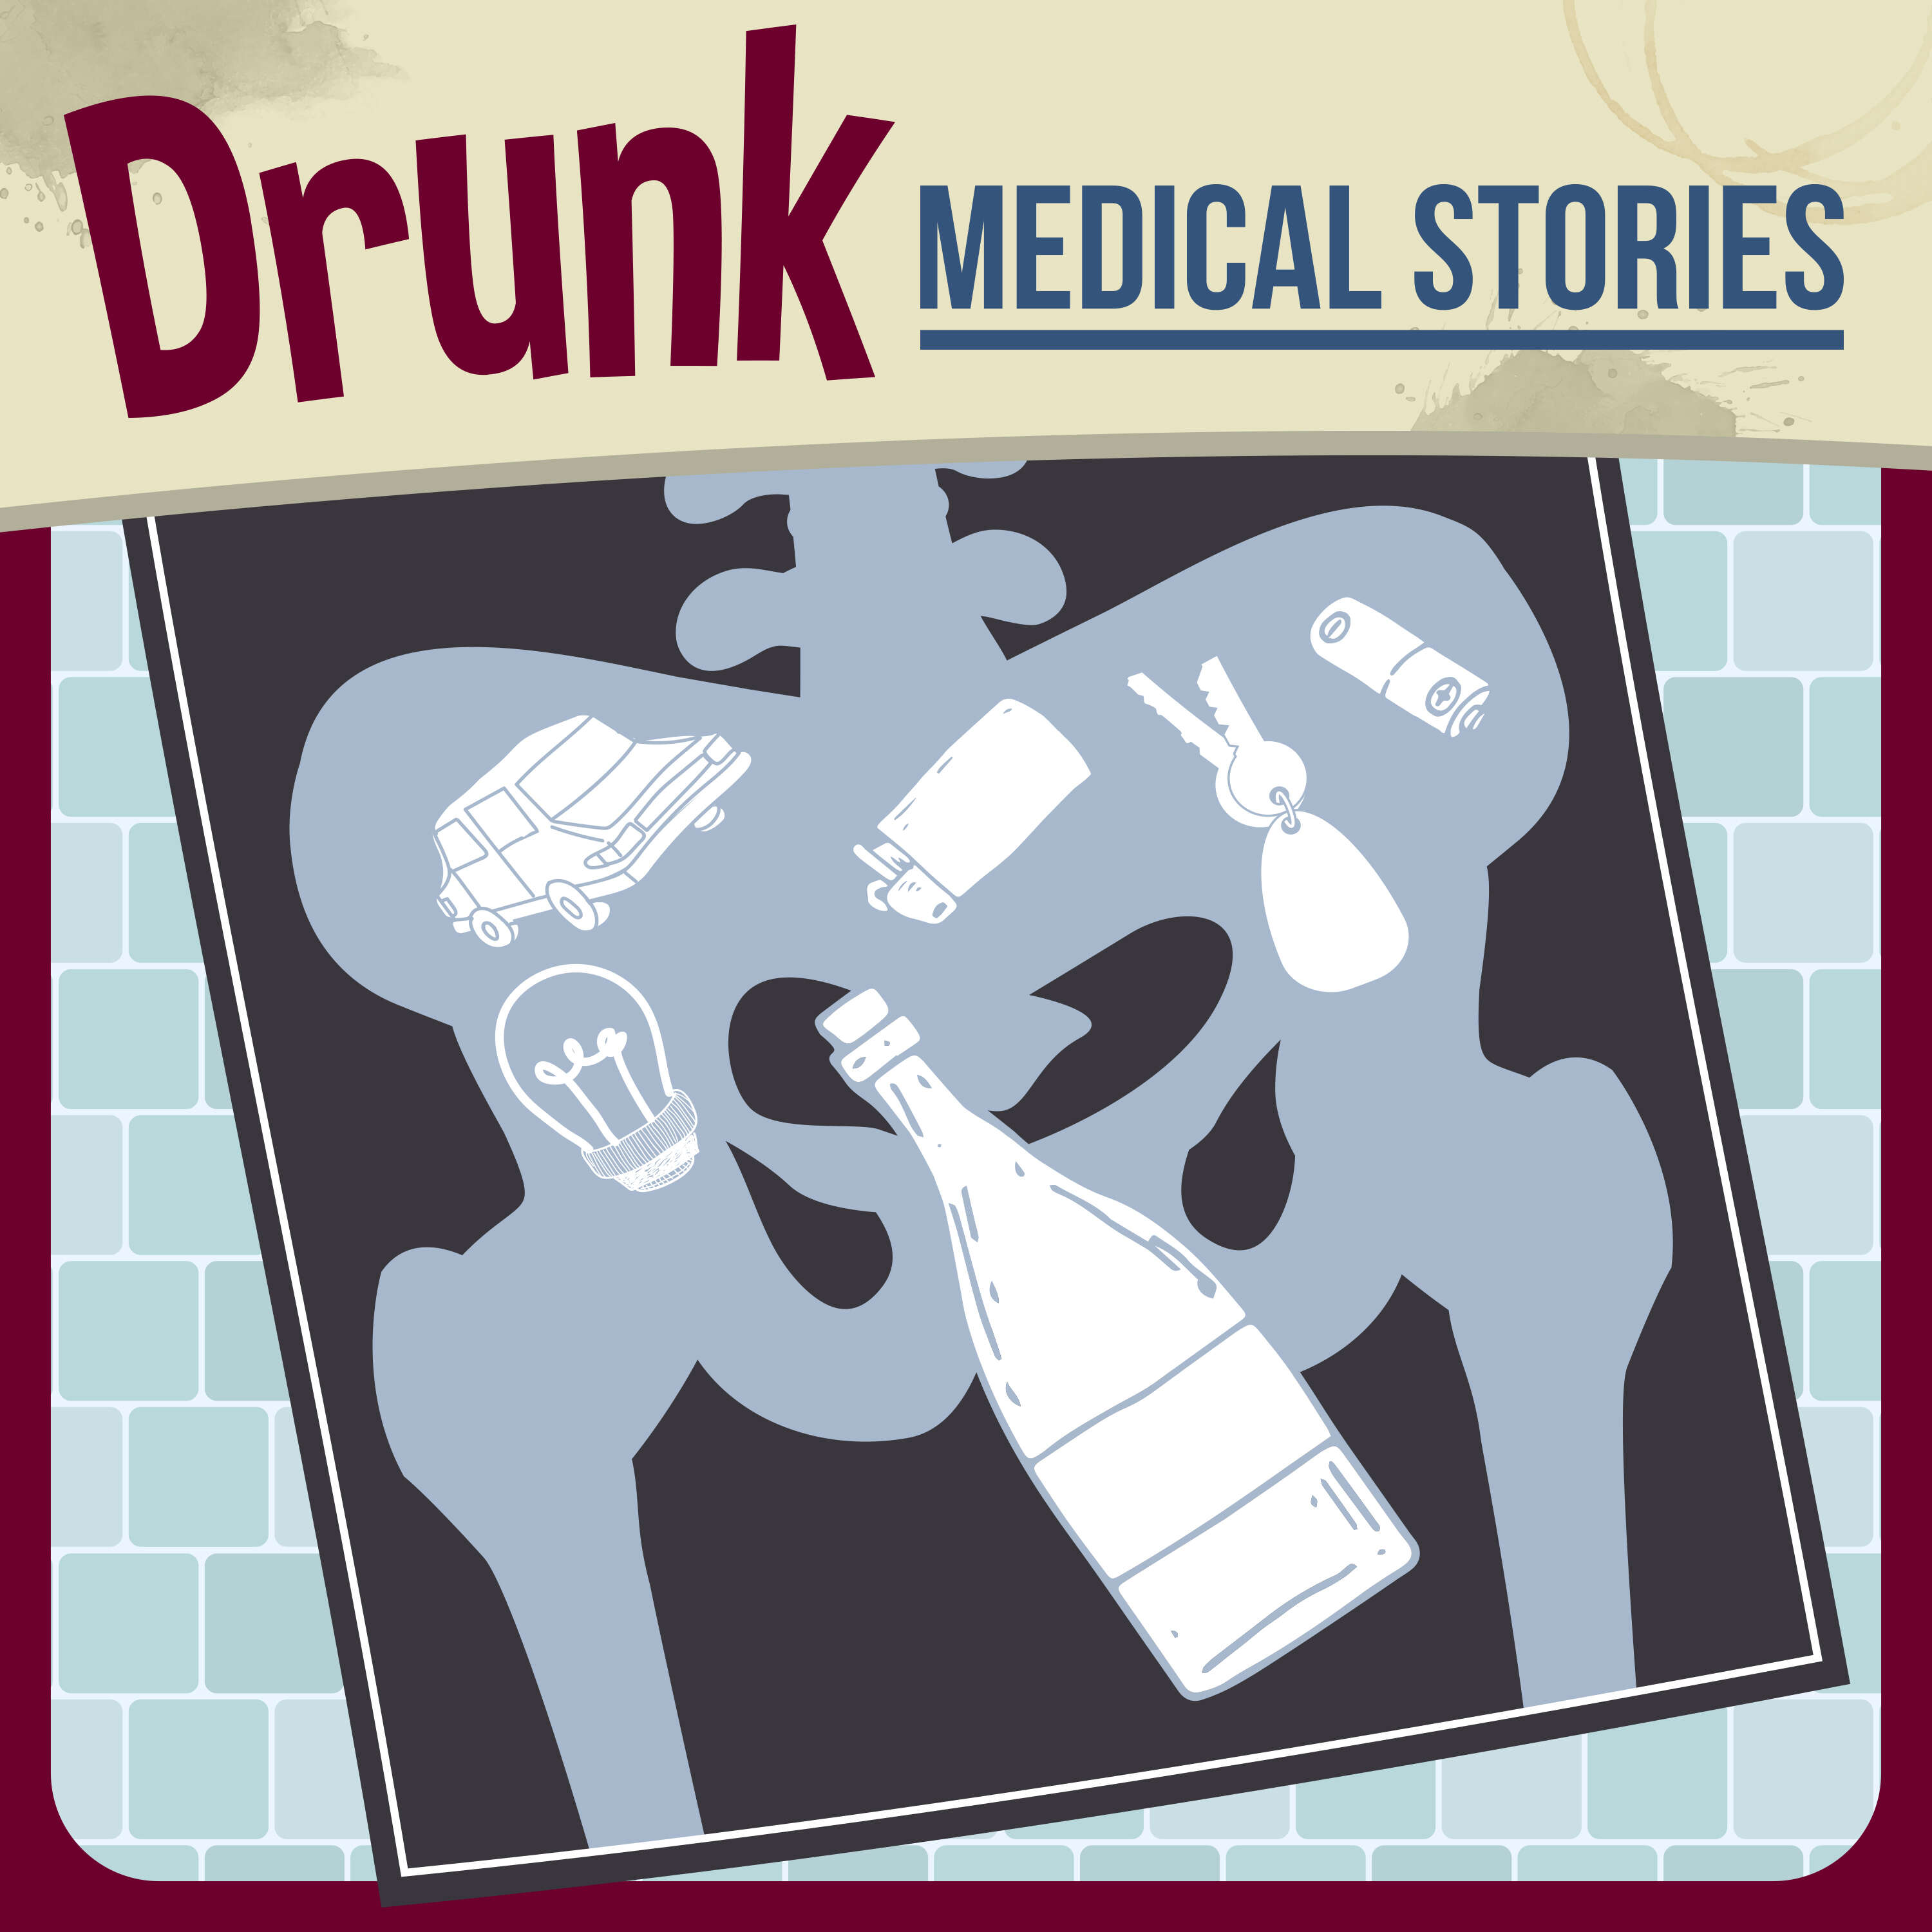 Welcome to Drunk Medical Stories